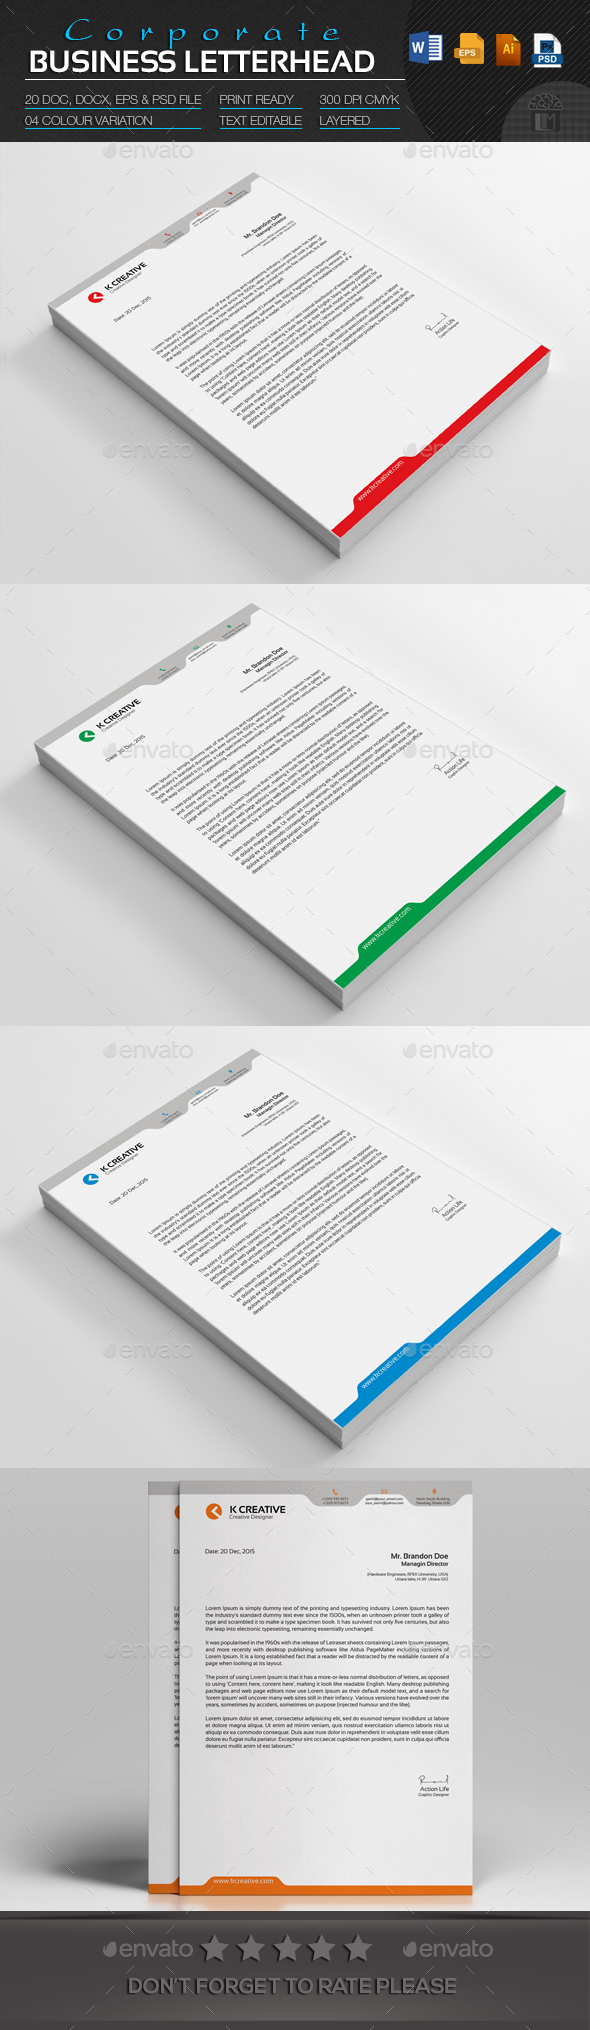 Corporate Business Letterhead - Stationery Print Templates